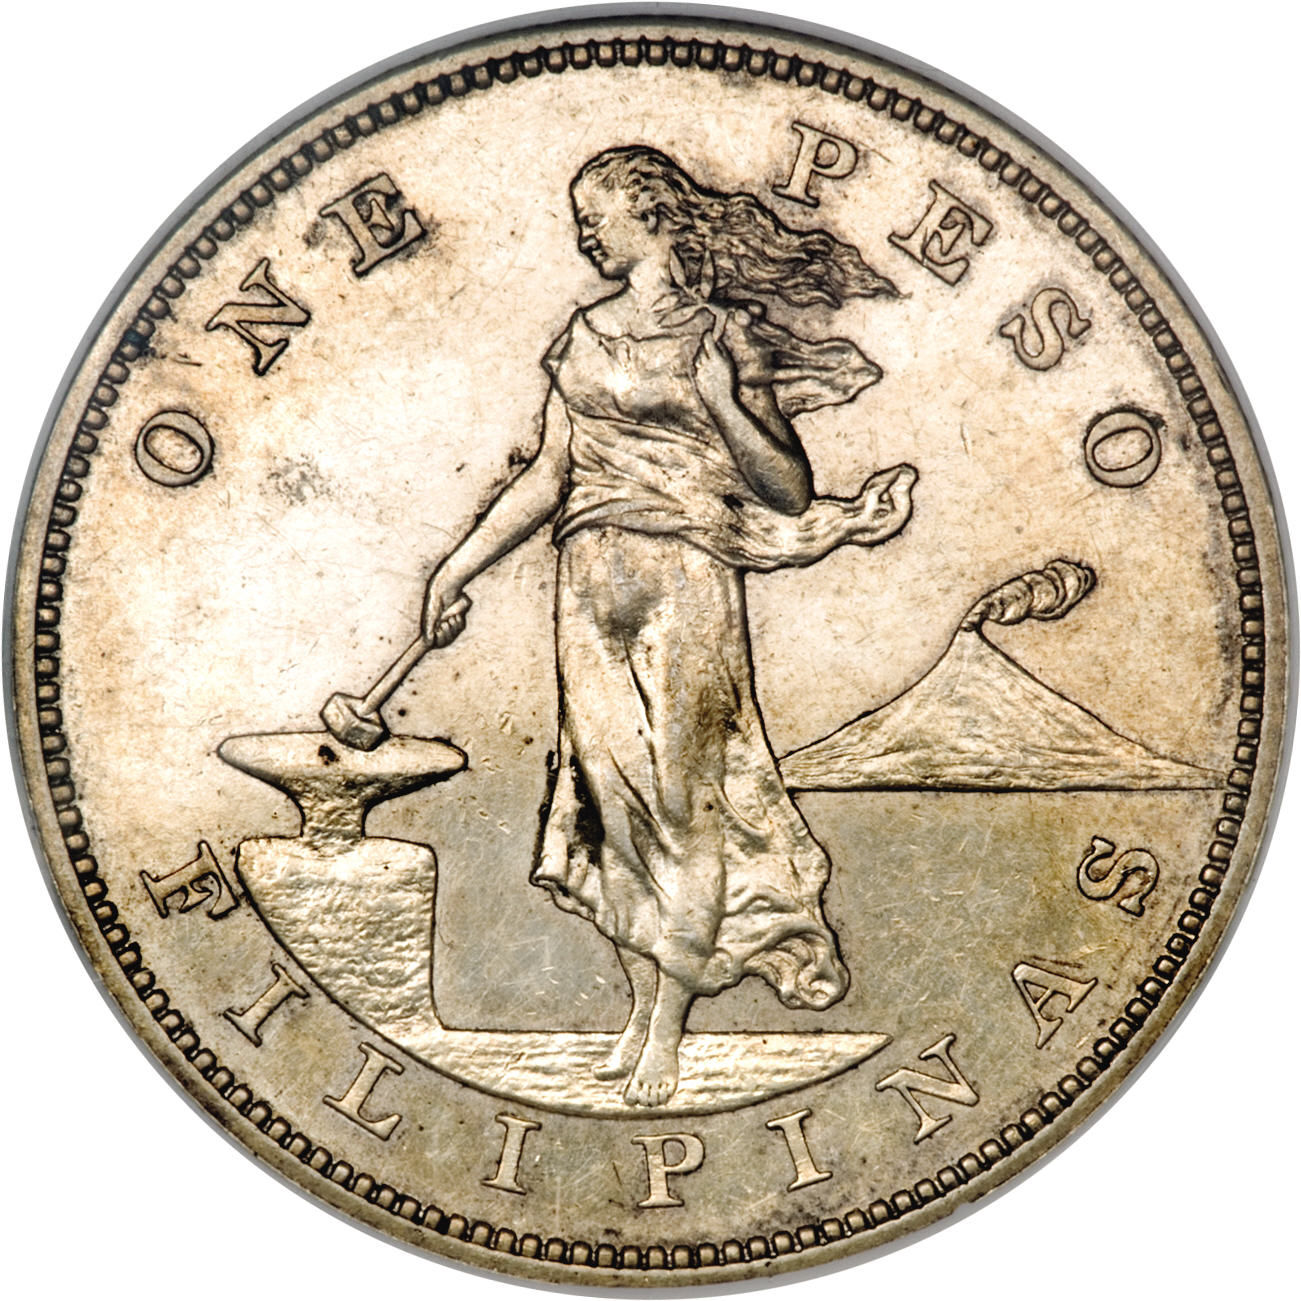 Coin Ph: 1 Peso (U.S. Administration)